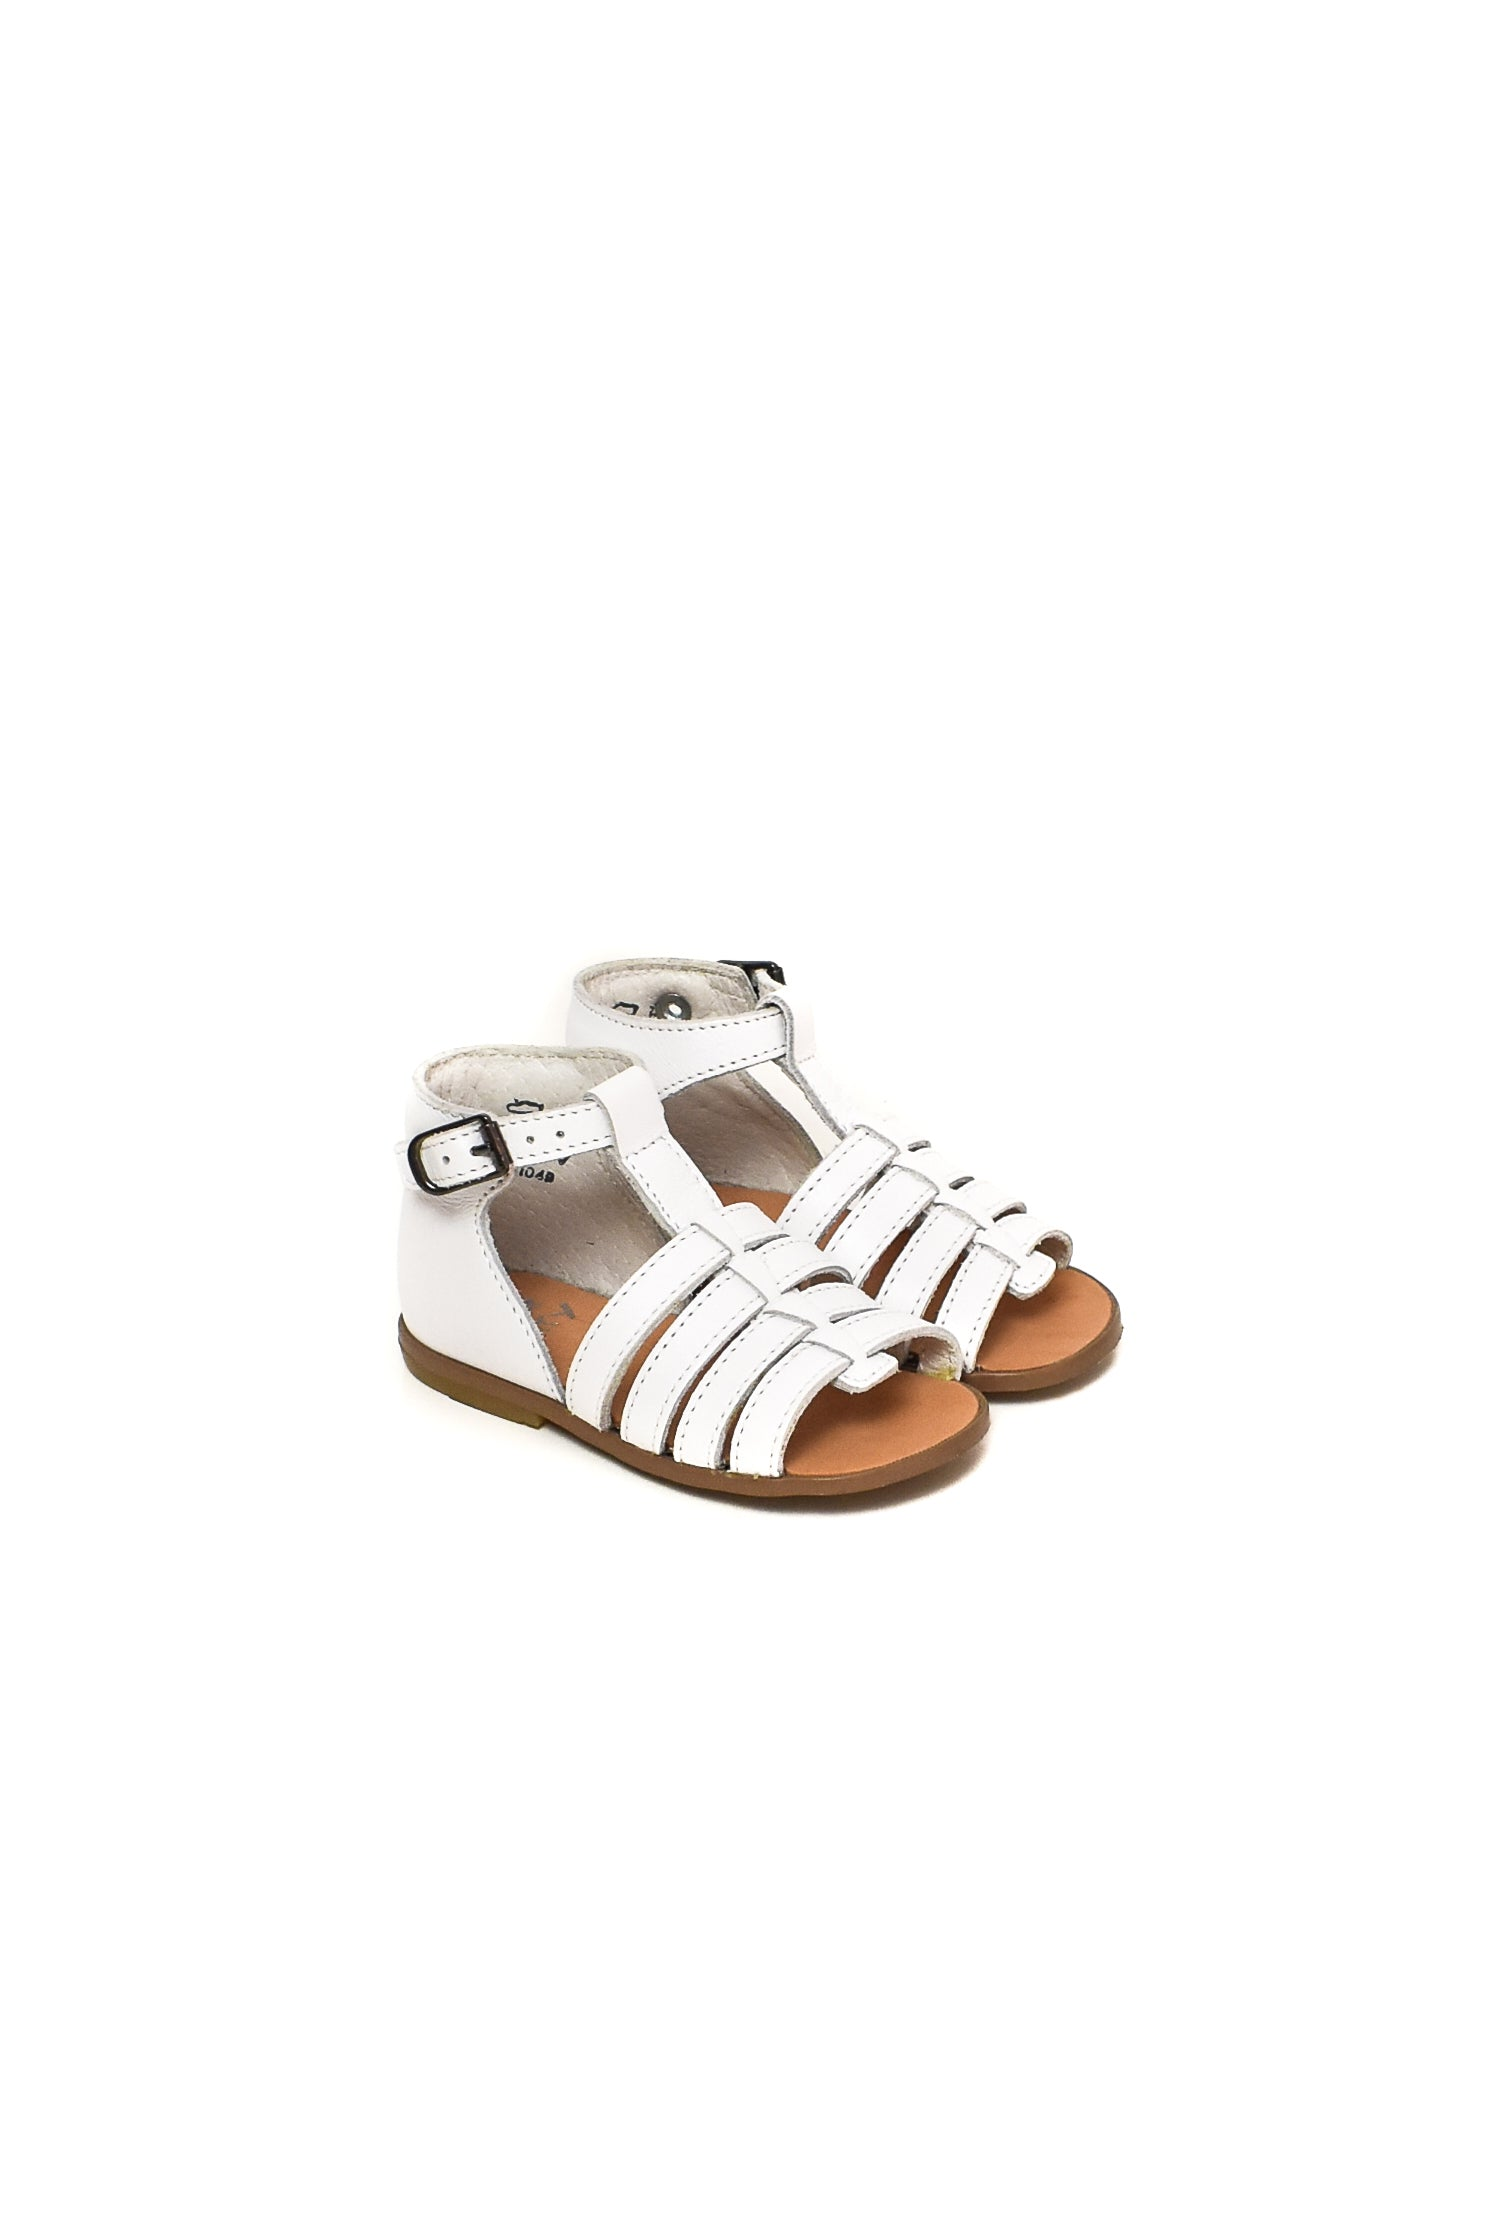 10007870 Little Mary Kids~Sandals 12M-3T (EU 20-25) at Retykle